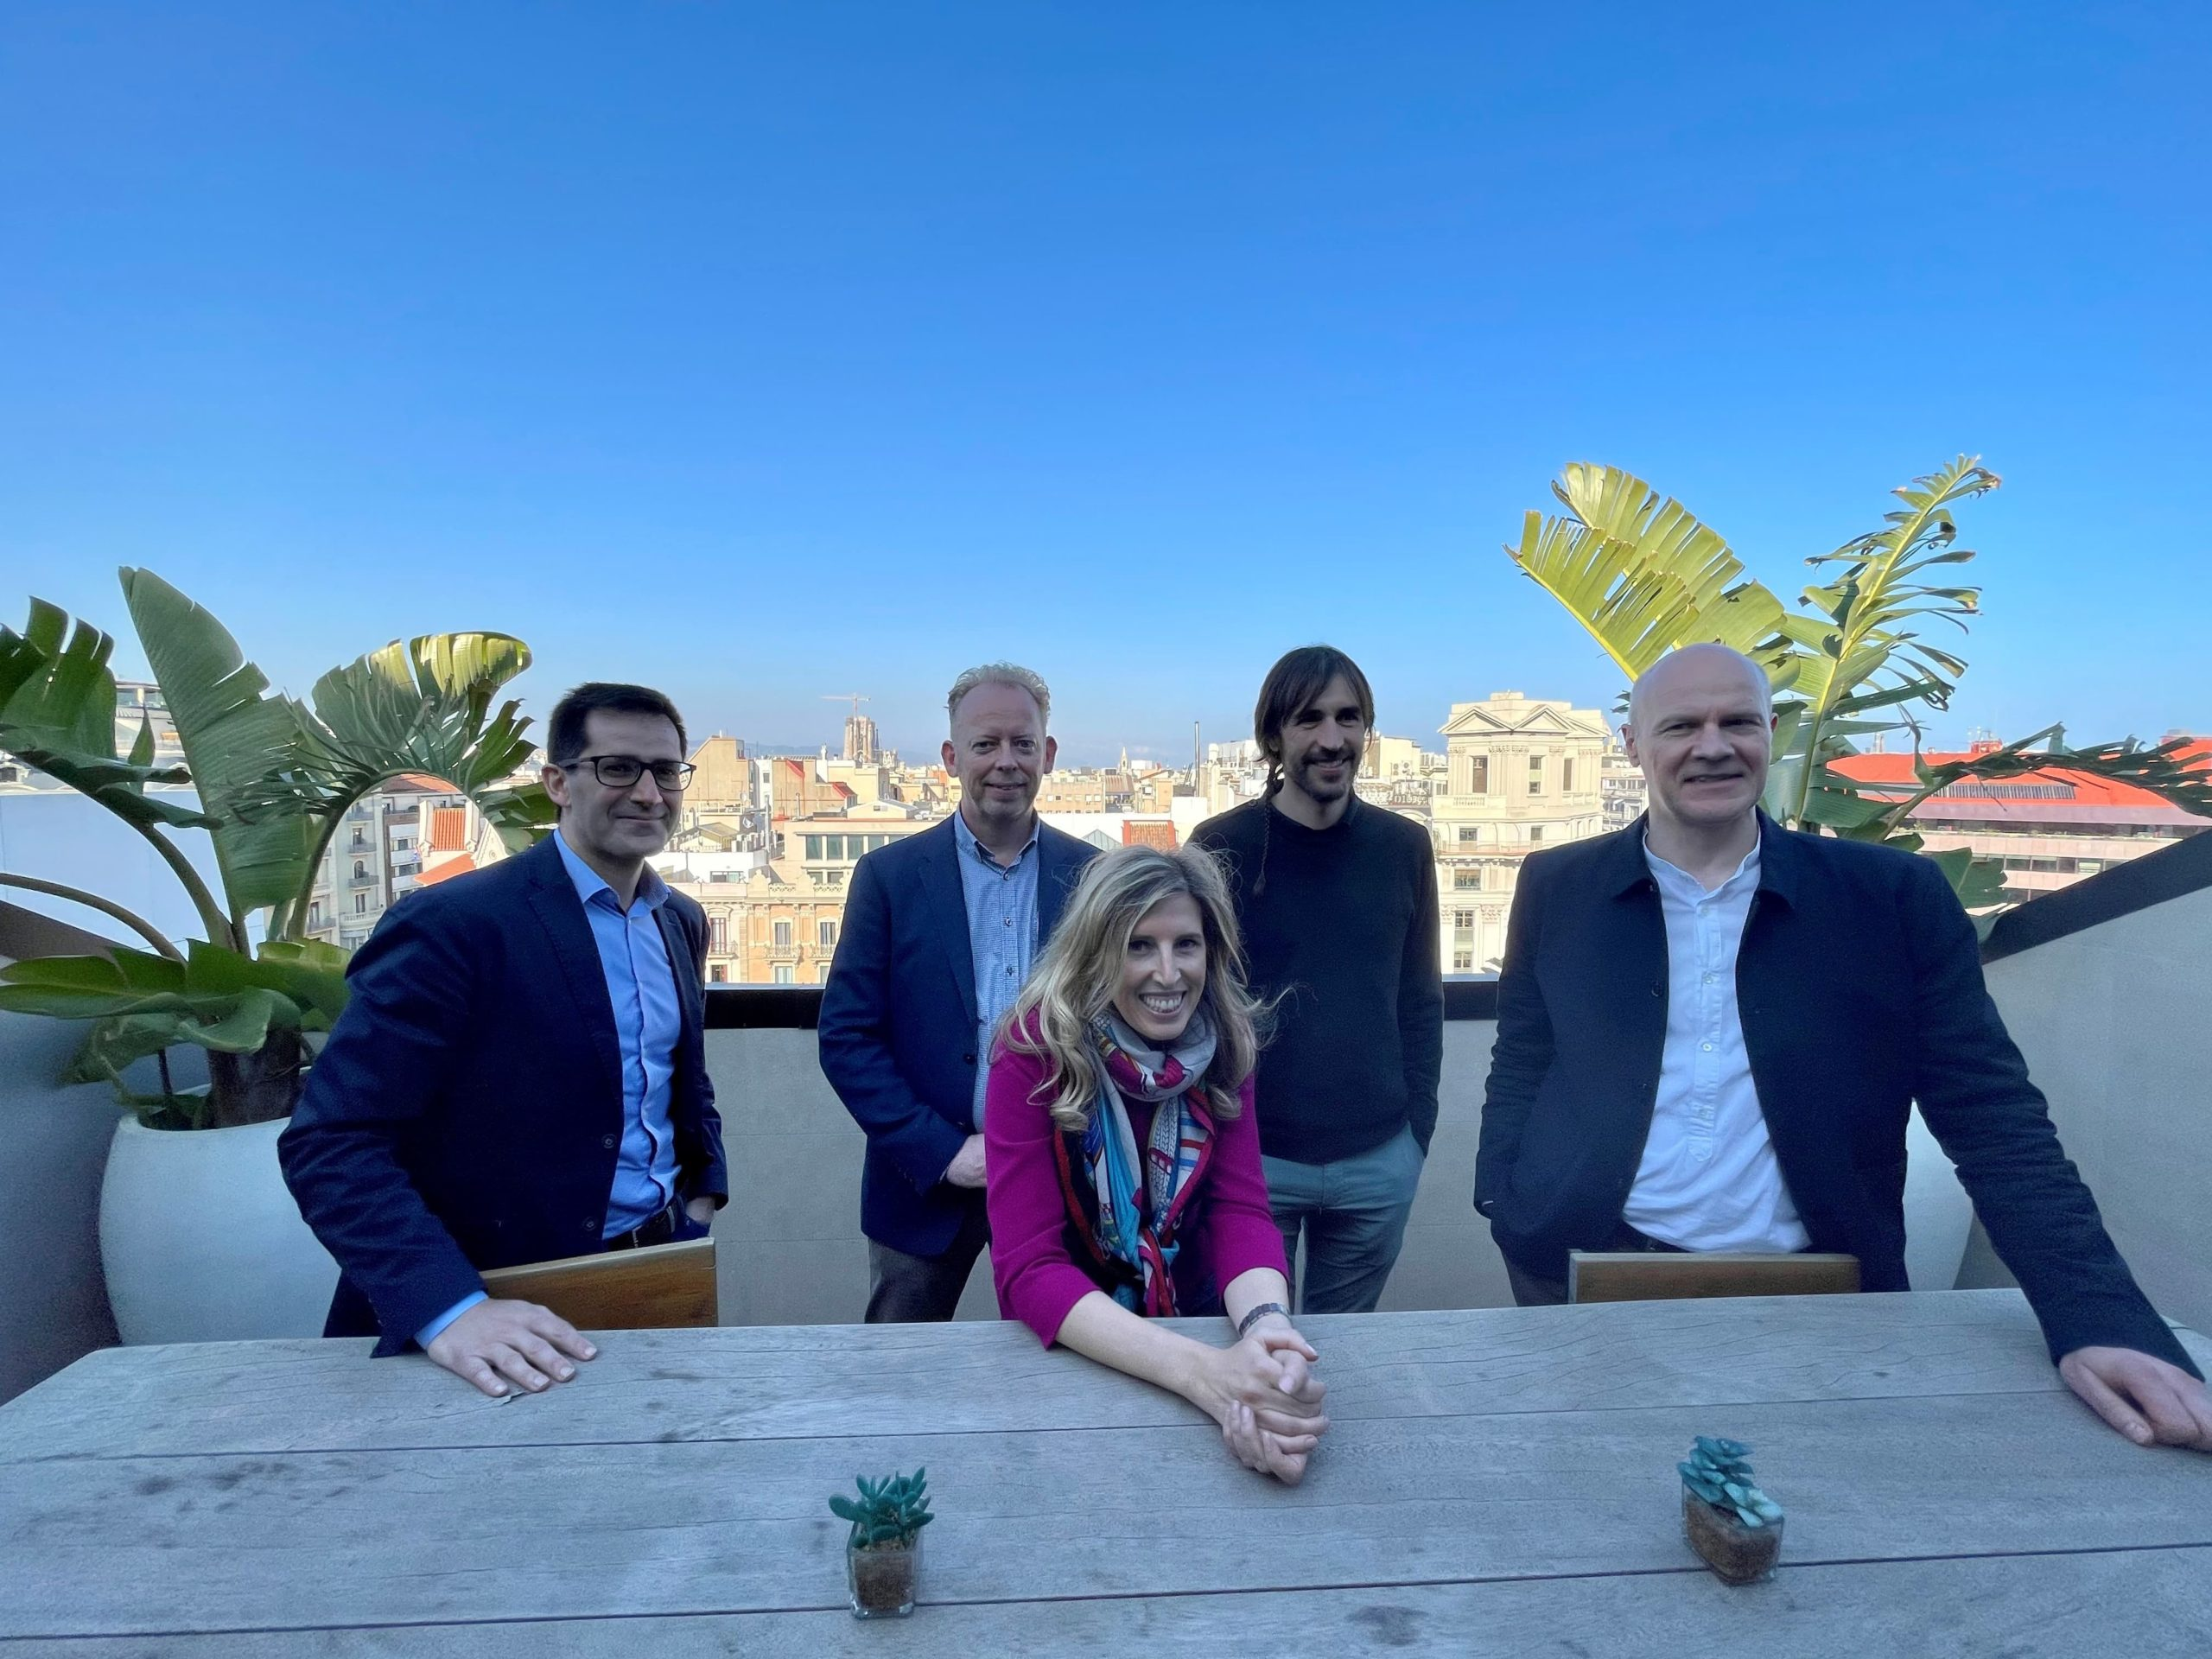 INBRAIN Neuroelectronics raises over €14M Series A led by Asabys Partners, Alta Life Sciences and CDTI to develop intelligent graphene-based neuroelectronic therapies for brain related disorders